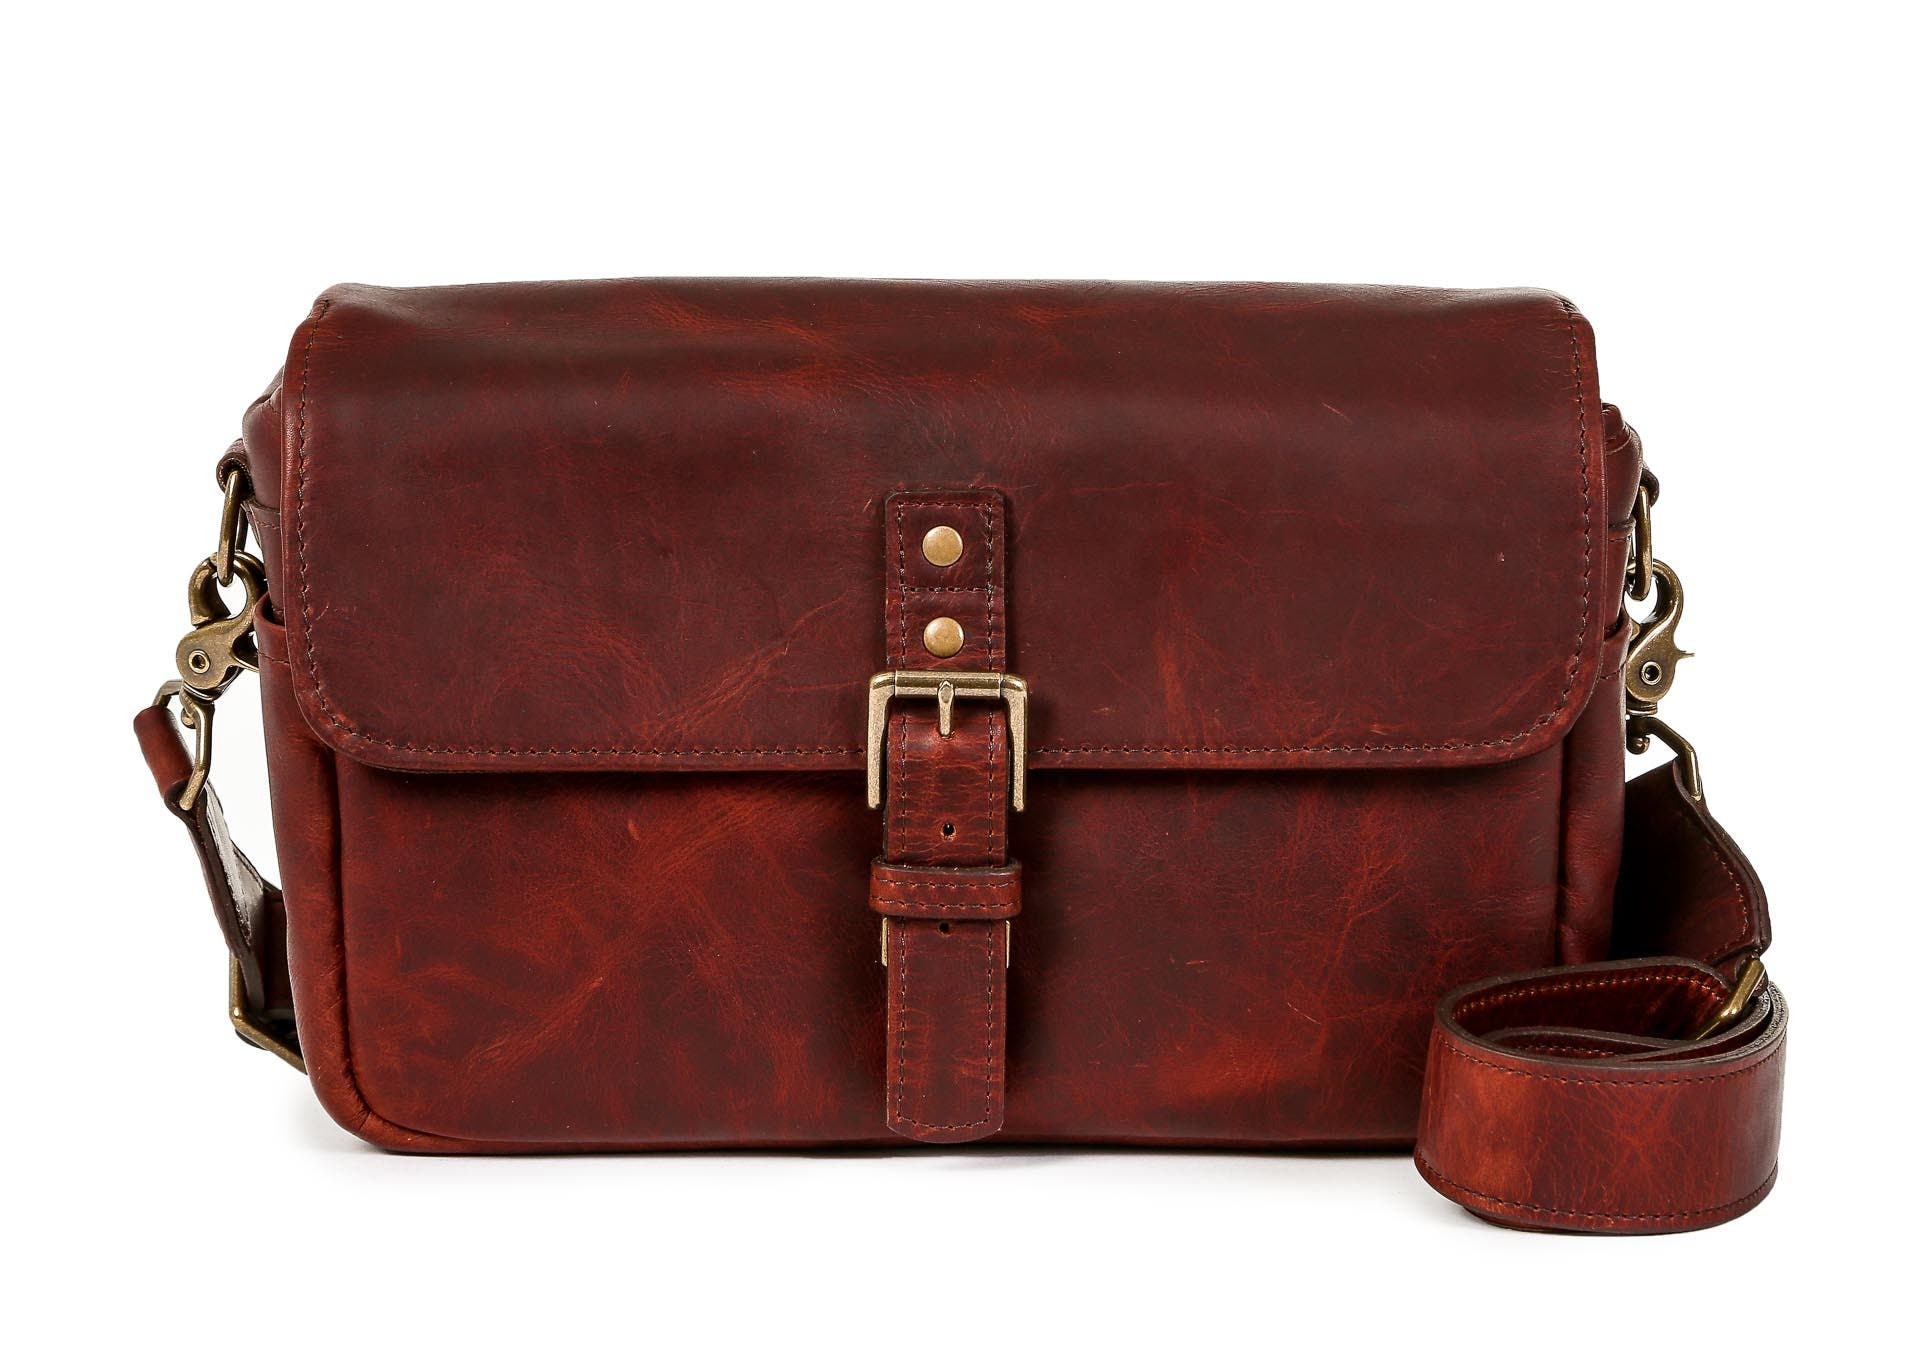 ONA Announces Leather Bowery Bag in All-New Bordeaux Color